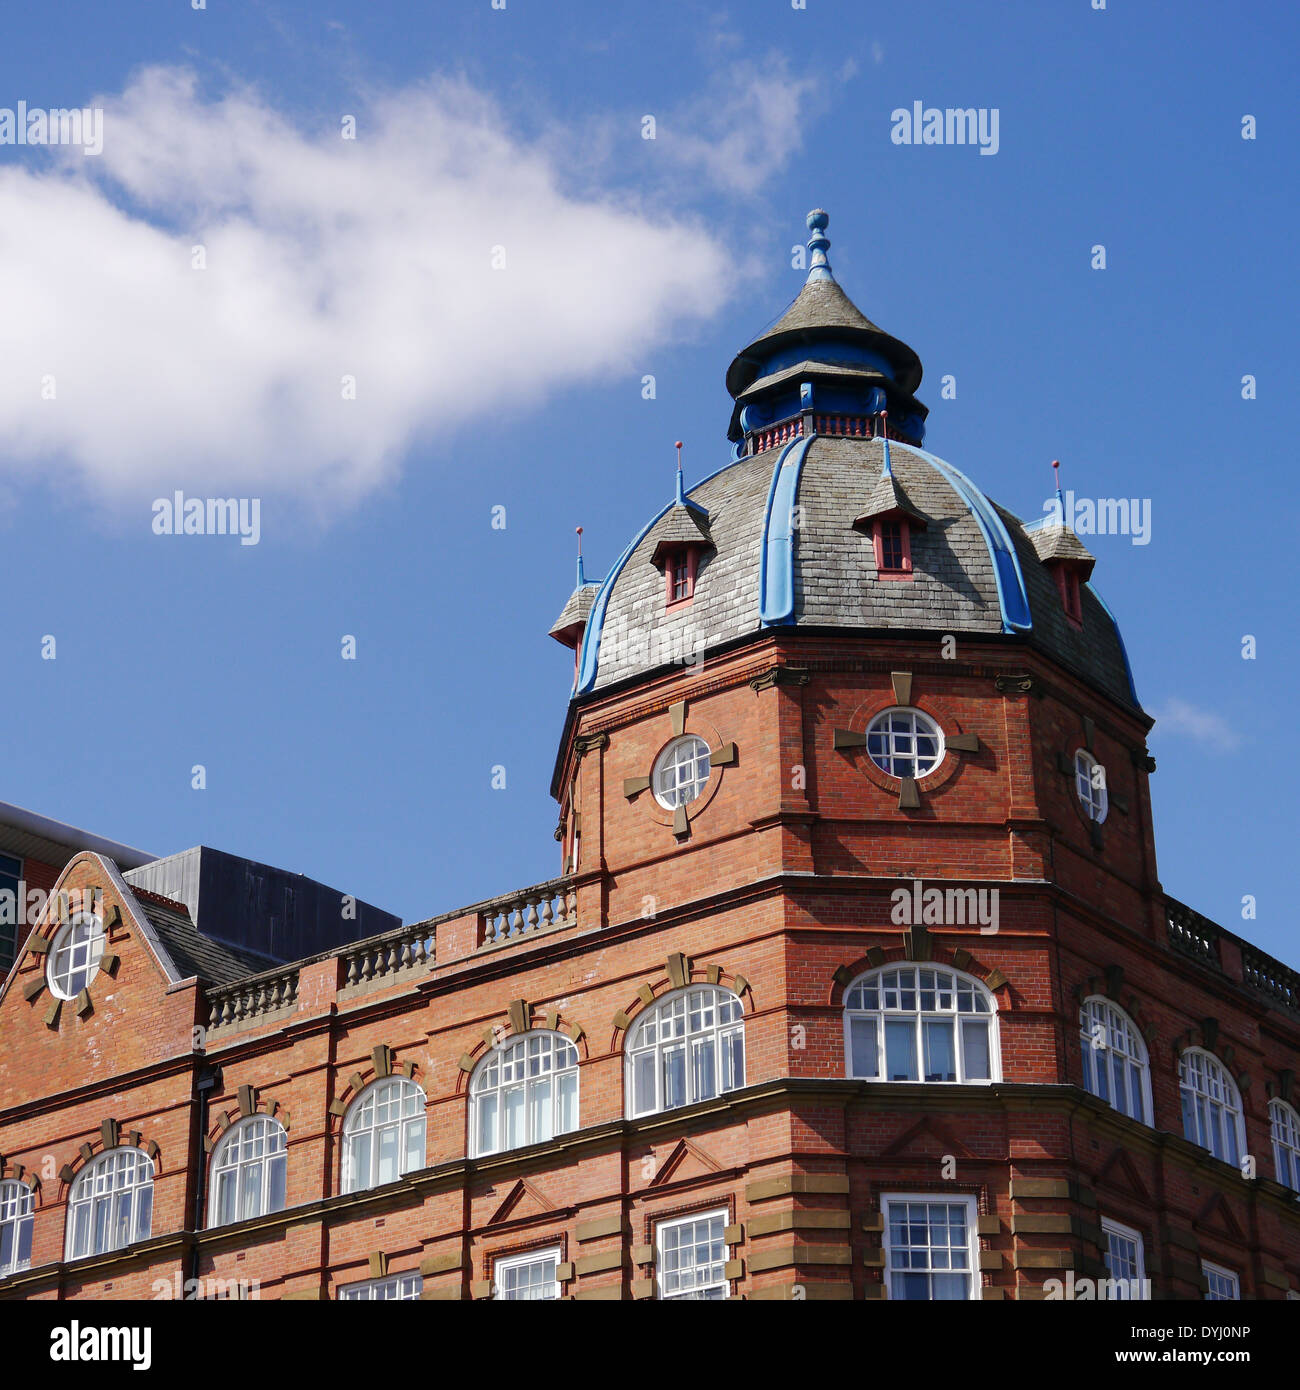 Architecture Built Architectural Features Of A Red Brick Domed Roof Stock Photo Alamy